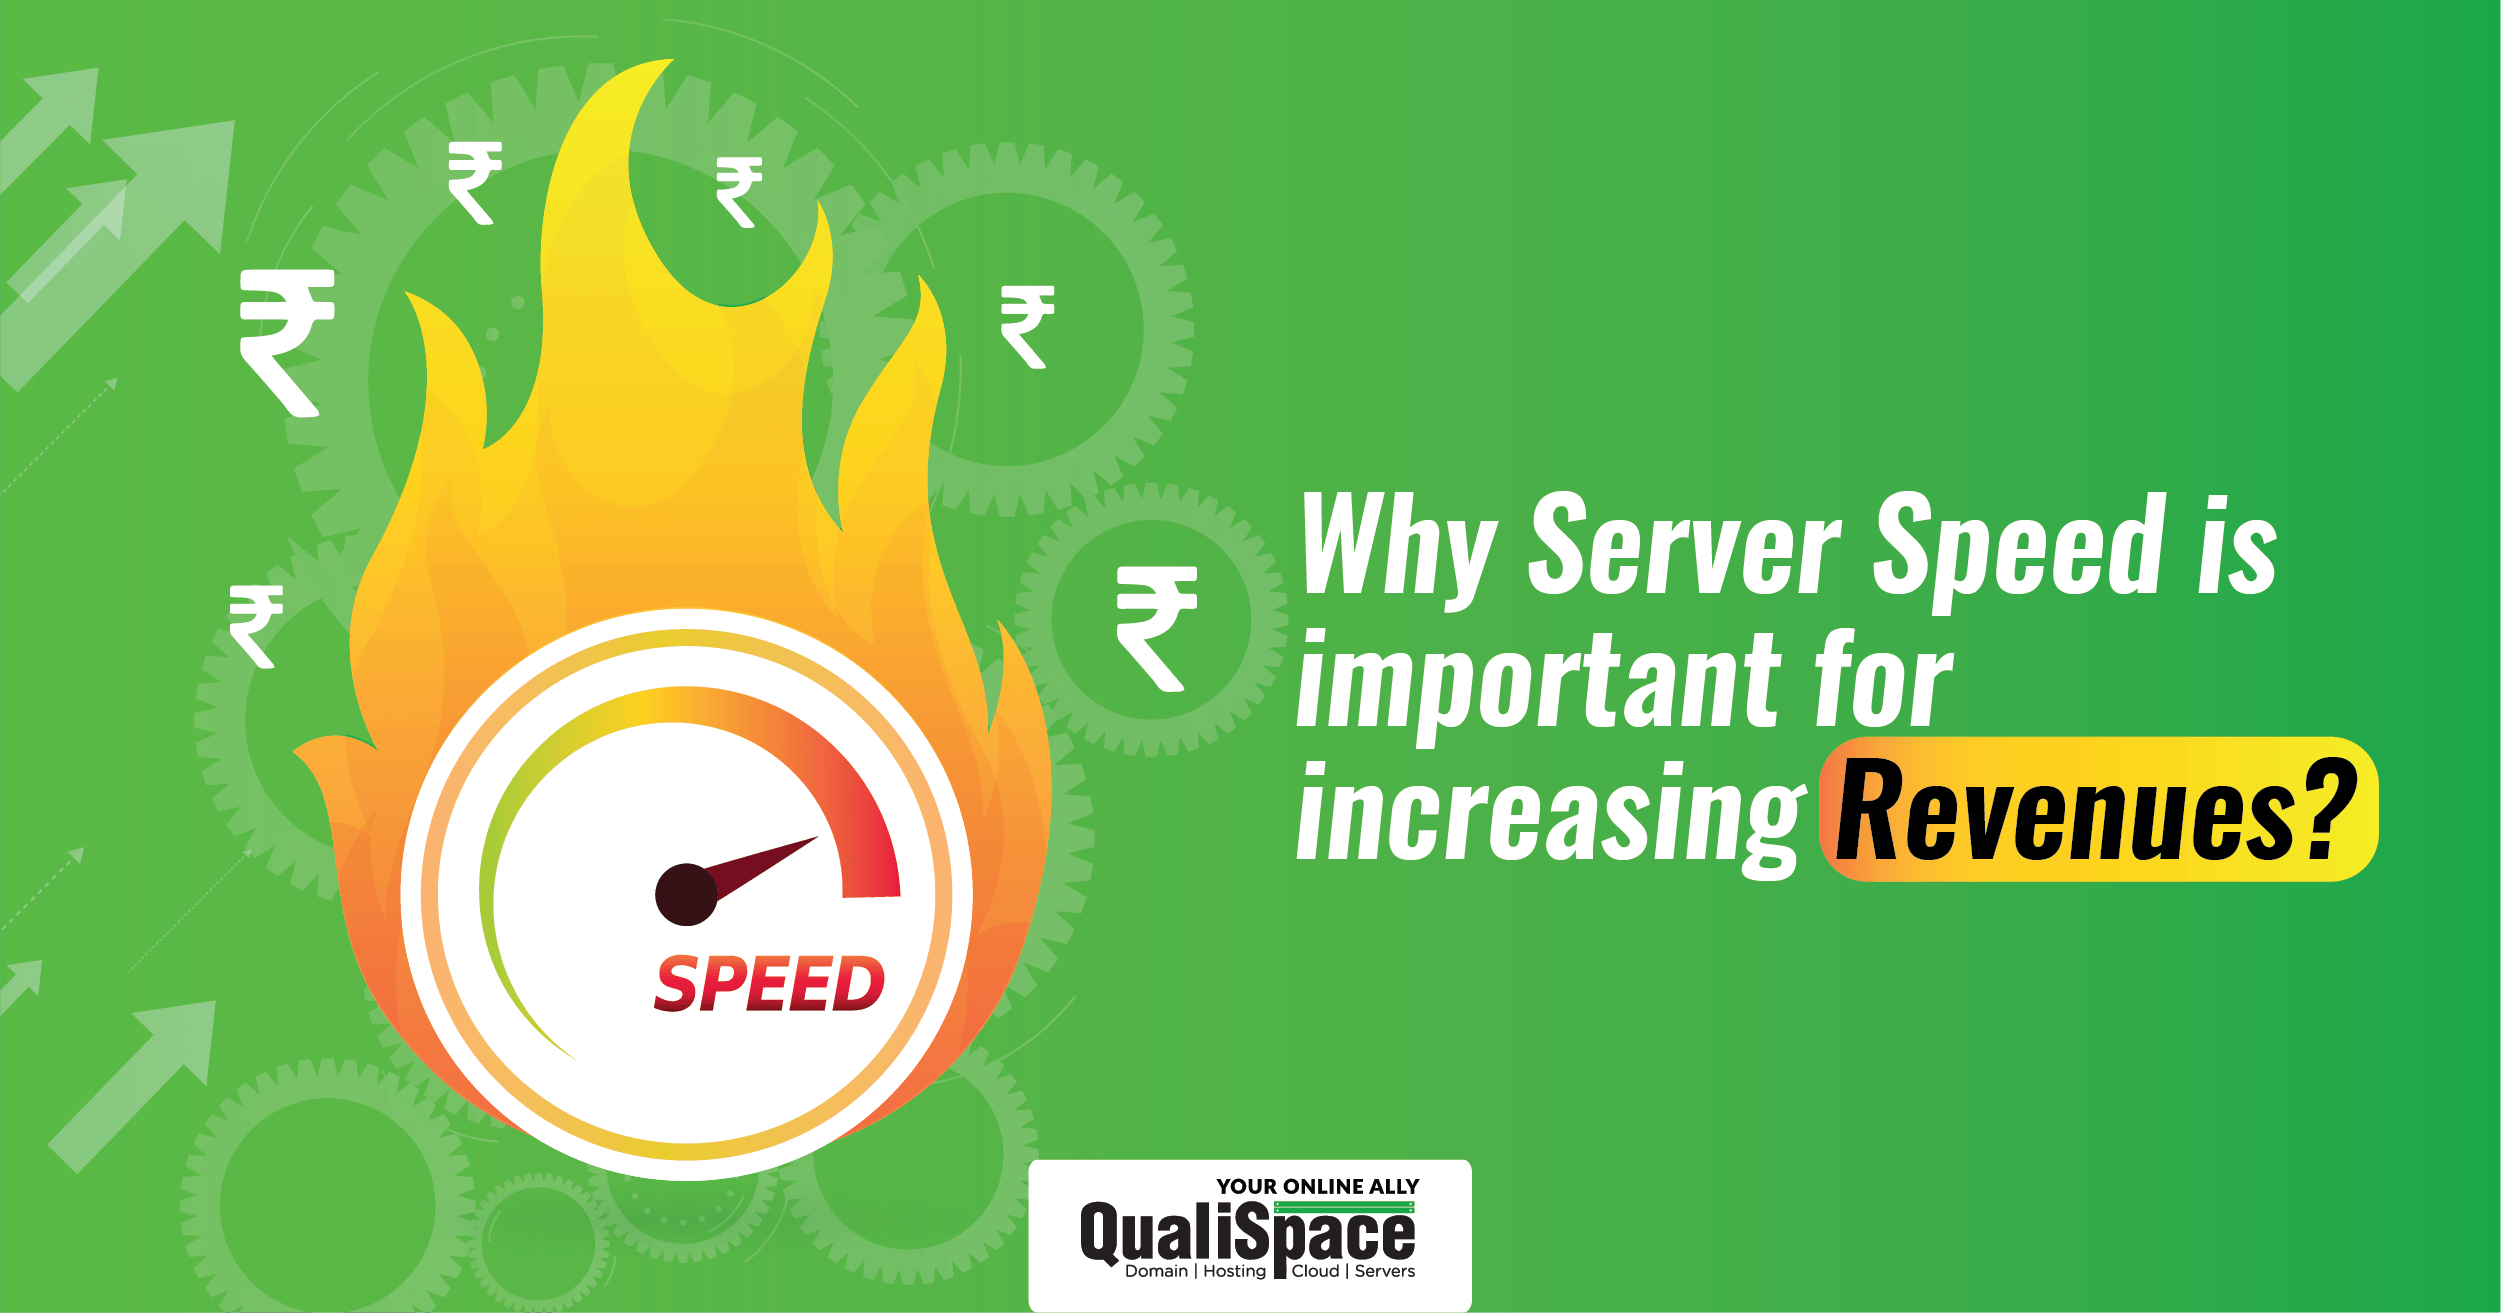 Why Server Speed is Important for Increasing Revenues?